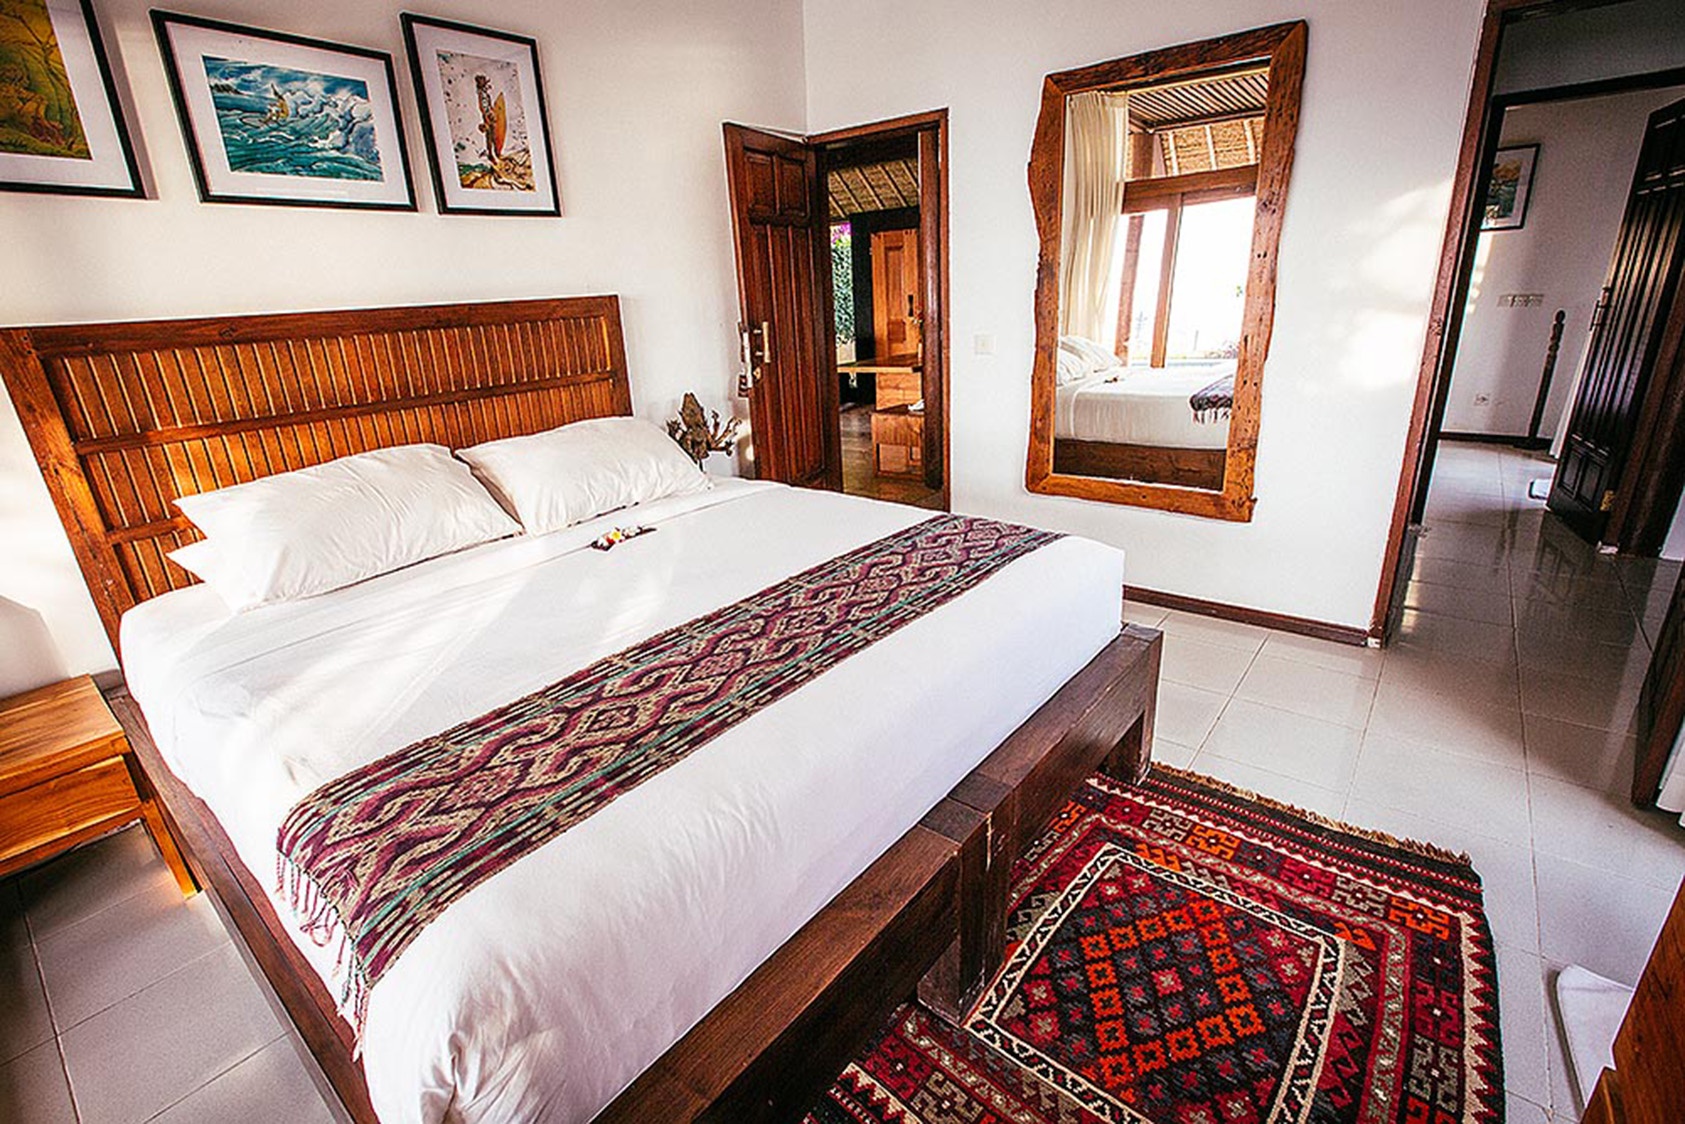 PACKAGE 2 - KING SIZE W/ PRIVATE BATH  Features:Private Bath,Ocean Views,Air Conditioning,Modern Suite,King Size Bed